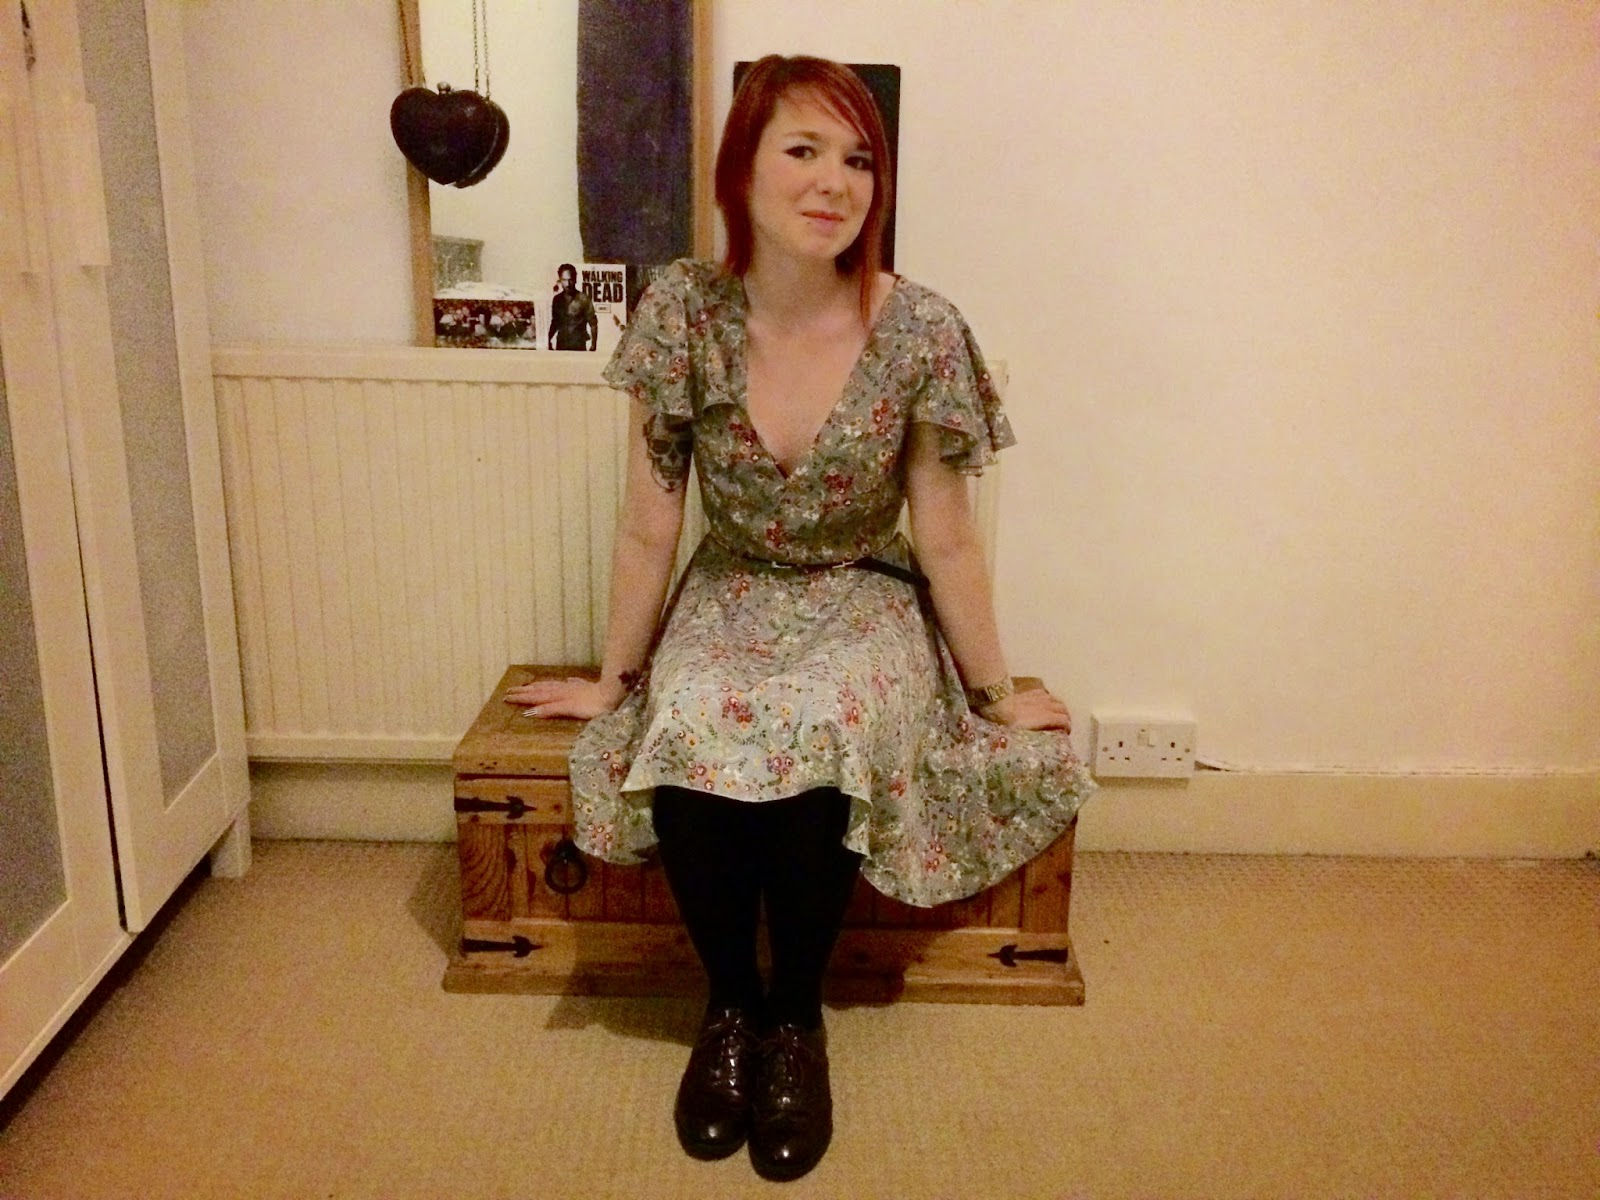 Floral dress with brogues, New Look brogues, New Look shoes